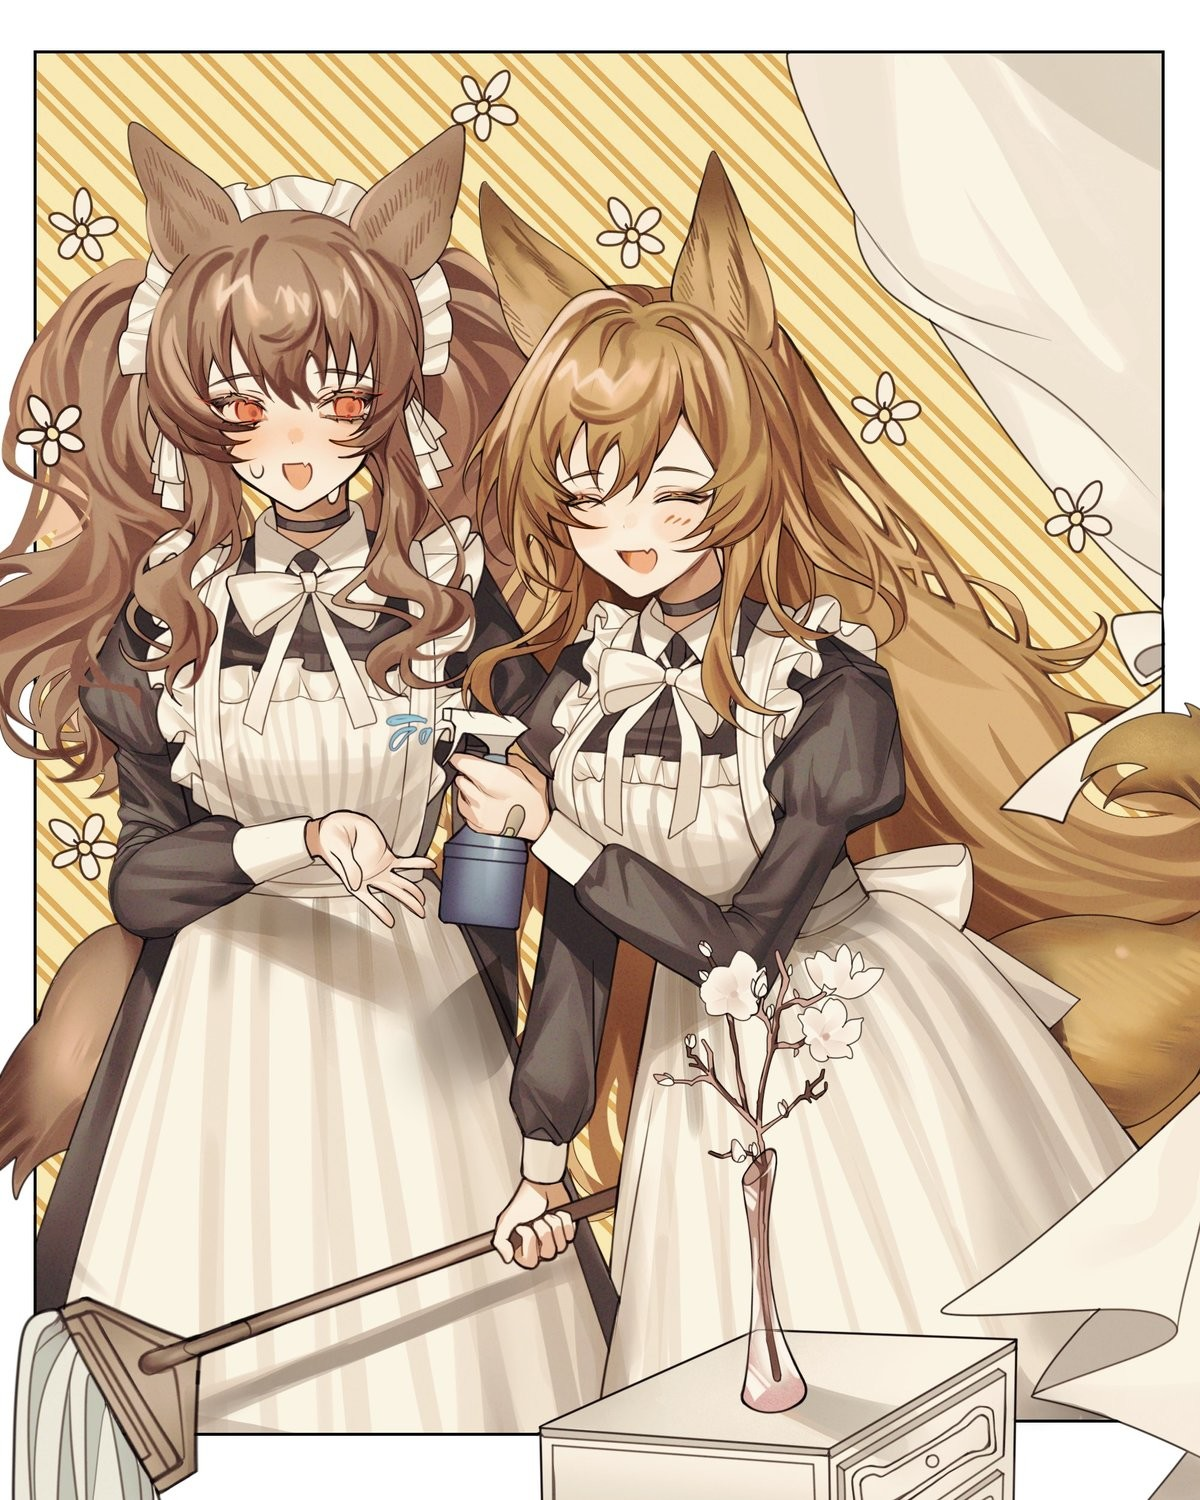 Maid March part 9. join list: SplendidServants (486 subs)Mention History join list: